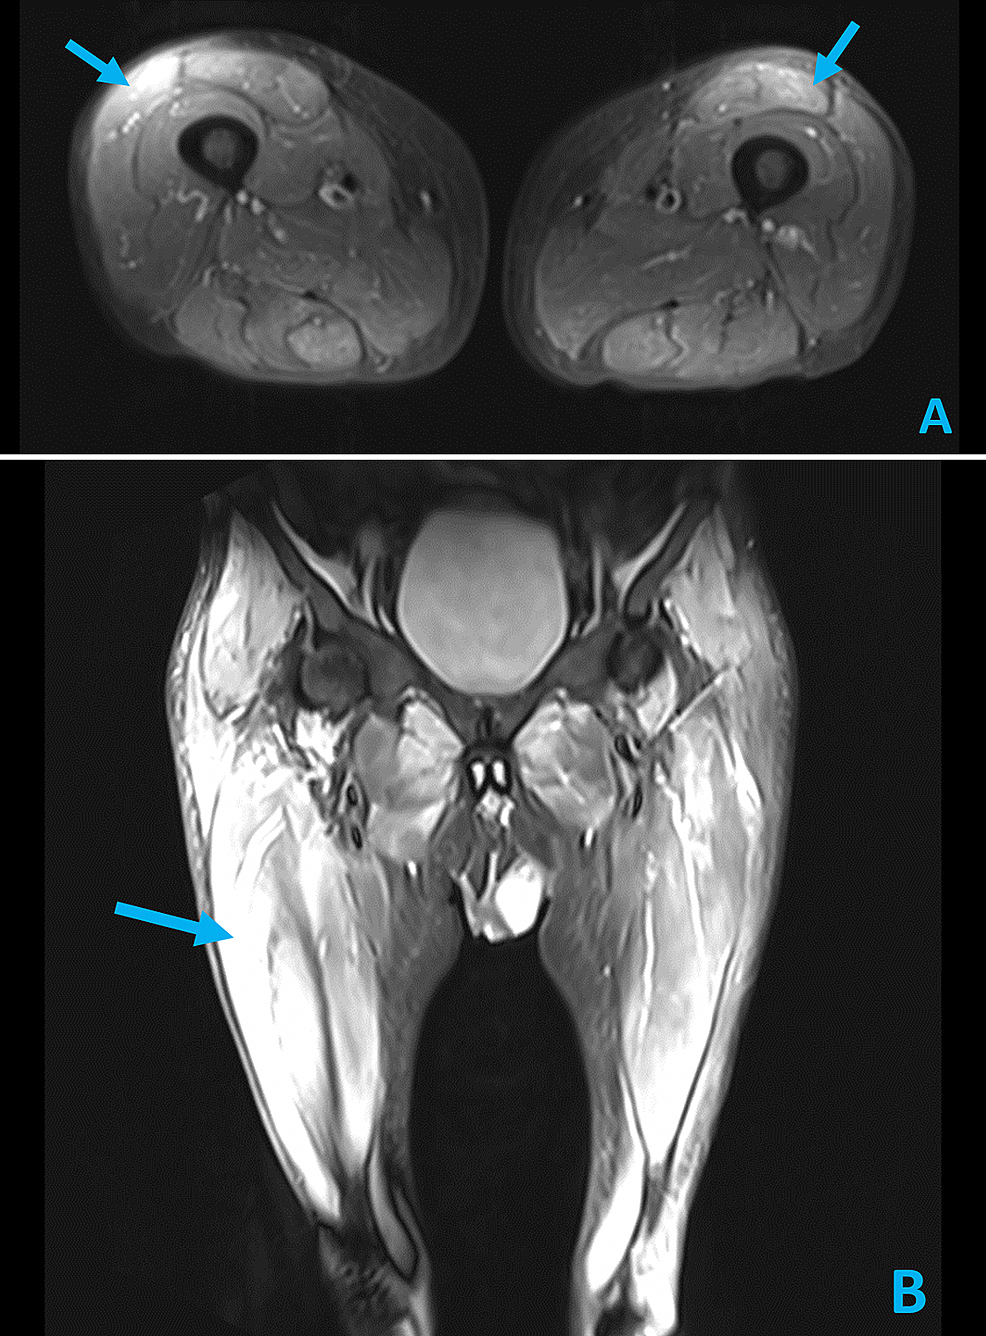 Axial-(A)-and-Coronal-(B)-STIR-MRI-images-of-the-lower-extremities-demonstrating-bilateral,-multi-compartmental-myositis-(arrows)-with-severe-involvement-of-rectus-femoris,-semimembranosus,-and-adductor-musculature.--